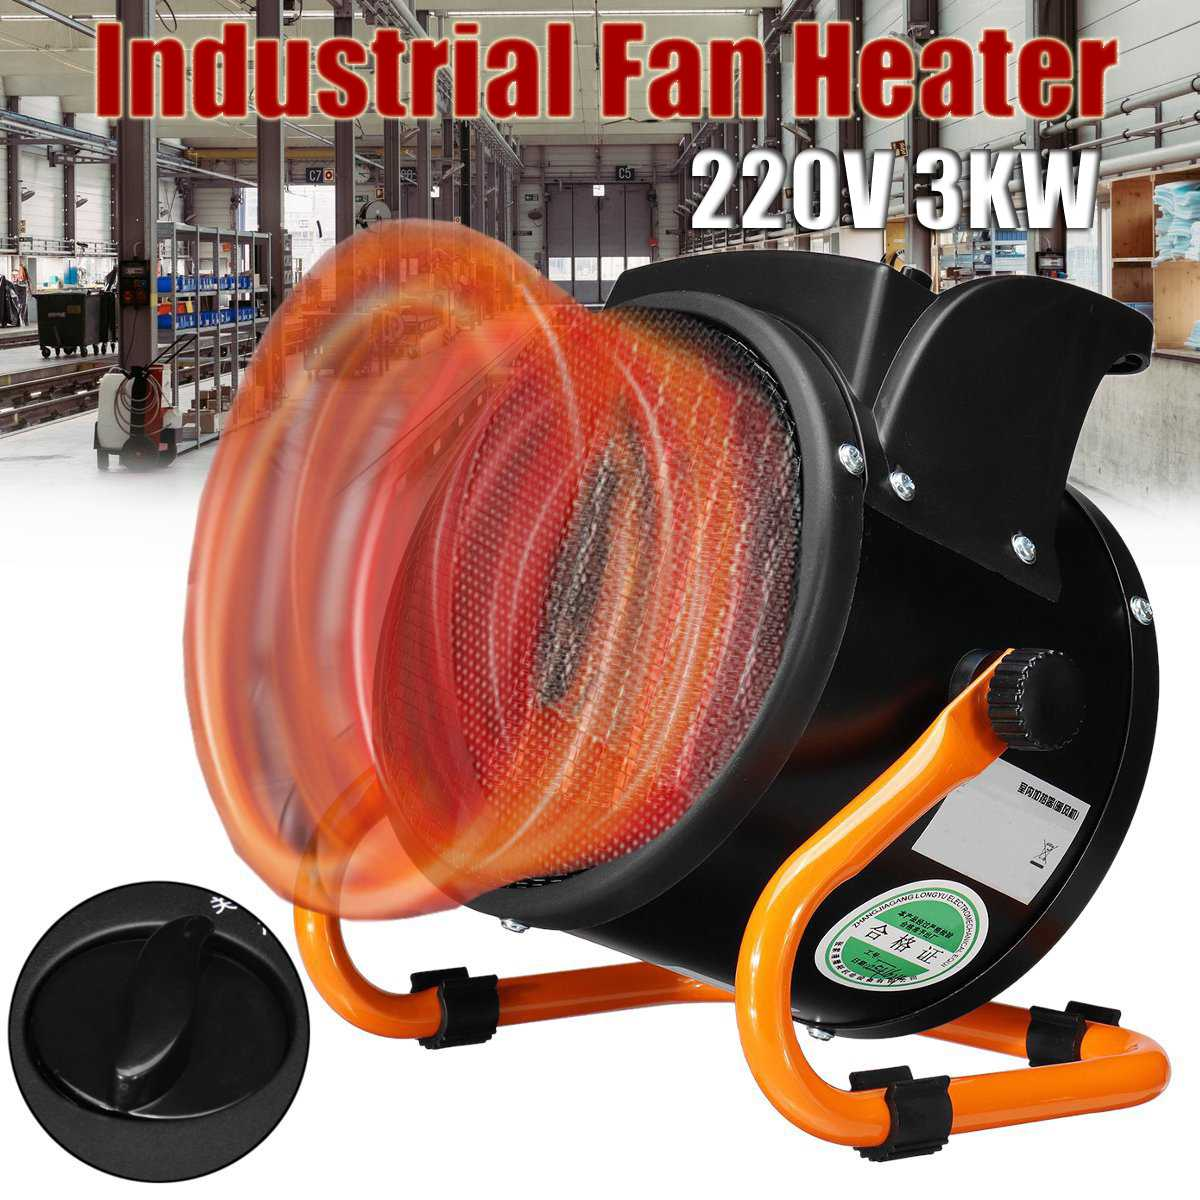 220V 3KW Newest Heater Portable Handy Durable Quality Mini Personal Ceramic Space Heater Electric Winter Warmer Fan